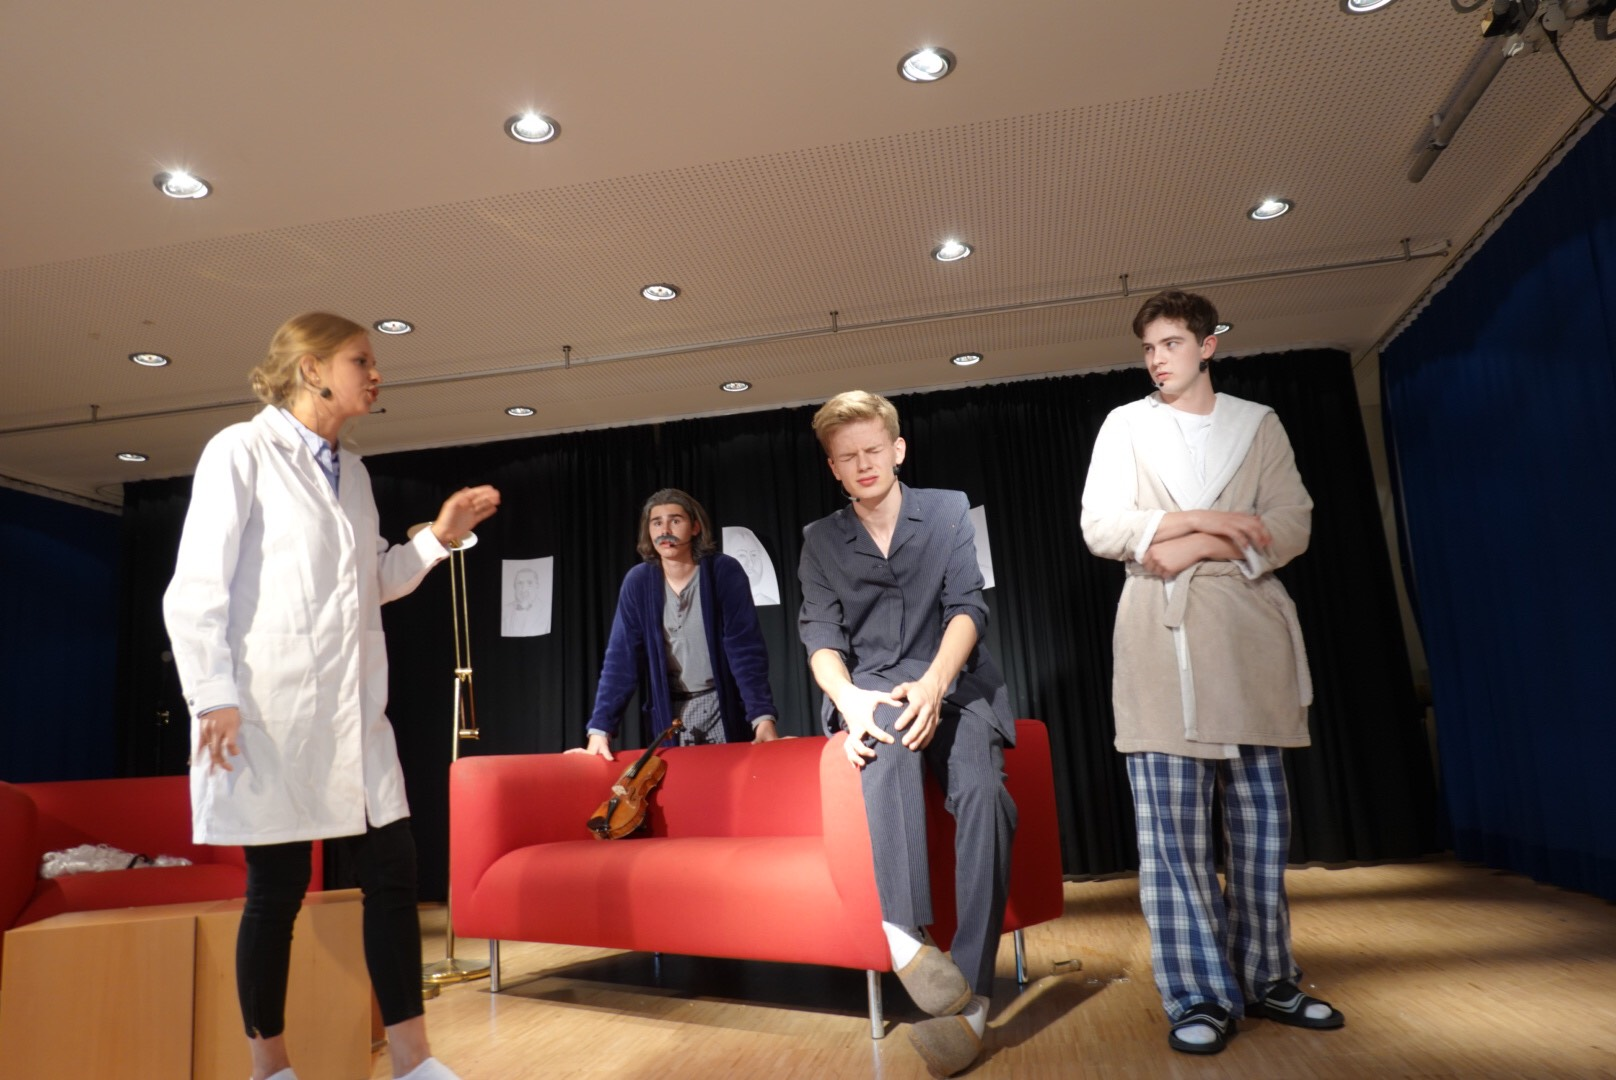 theater-am-pdg-die-physiker-2019